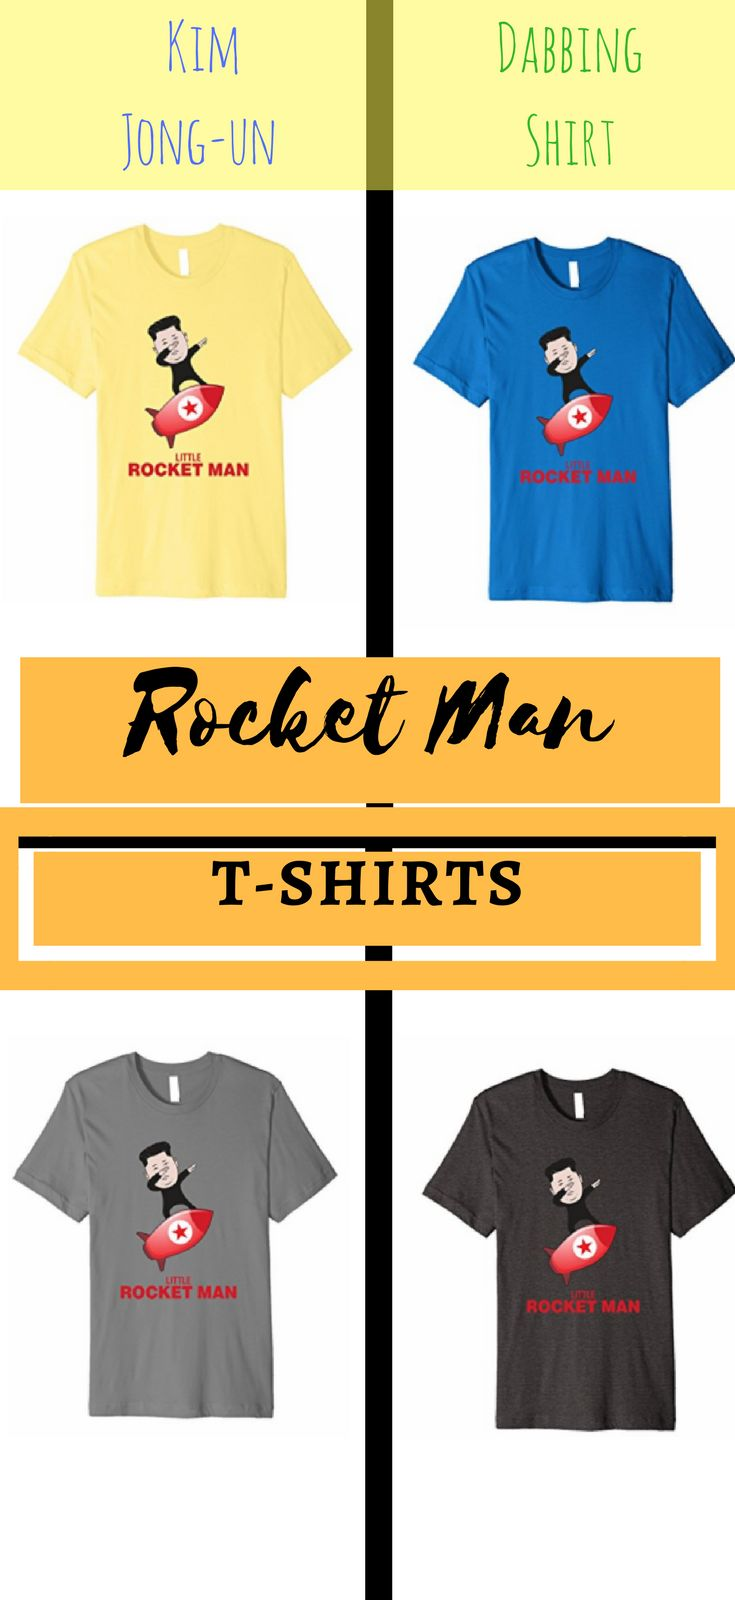 5723caf08 Rocket Man T-Shirt Kim Jong-un Tee Dabbing Shirt. Dabbing Little Rocket Man  T-Shirt. Great gift idea for people who are into polit… | Rocket Man Tshirt  ...